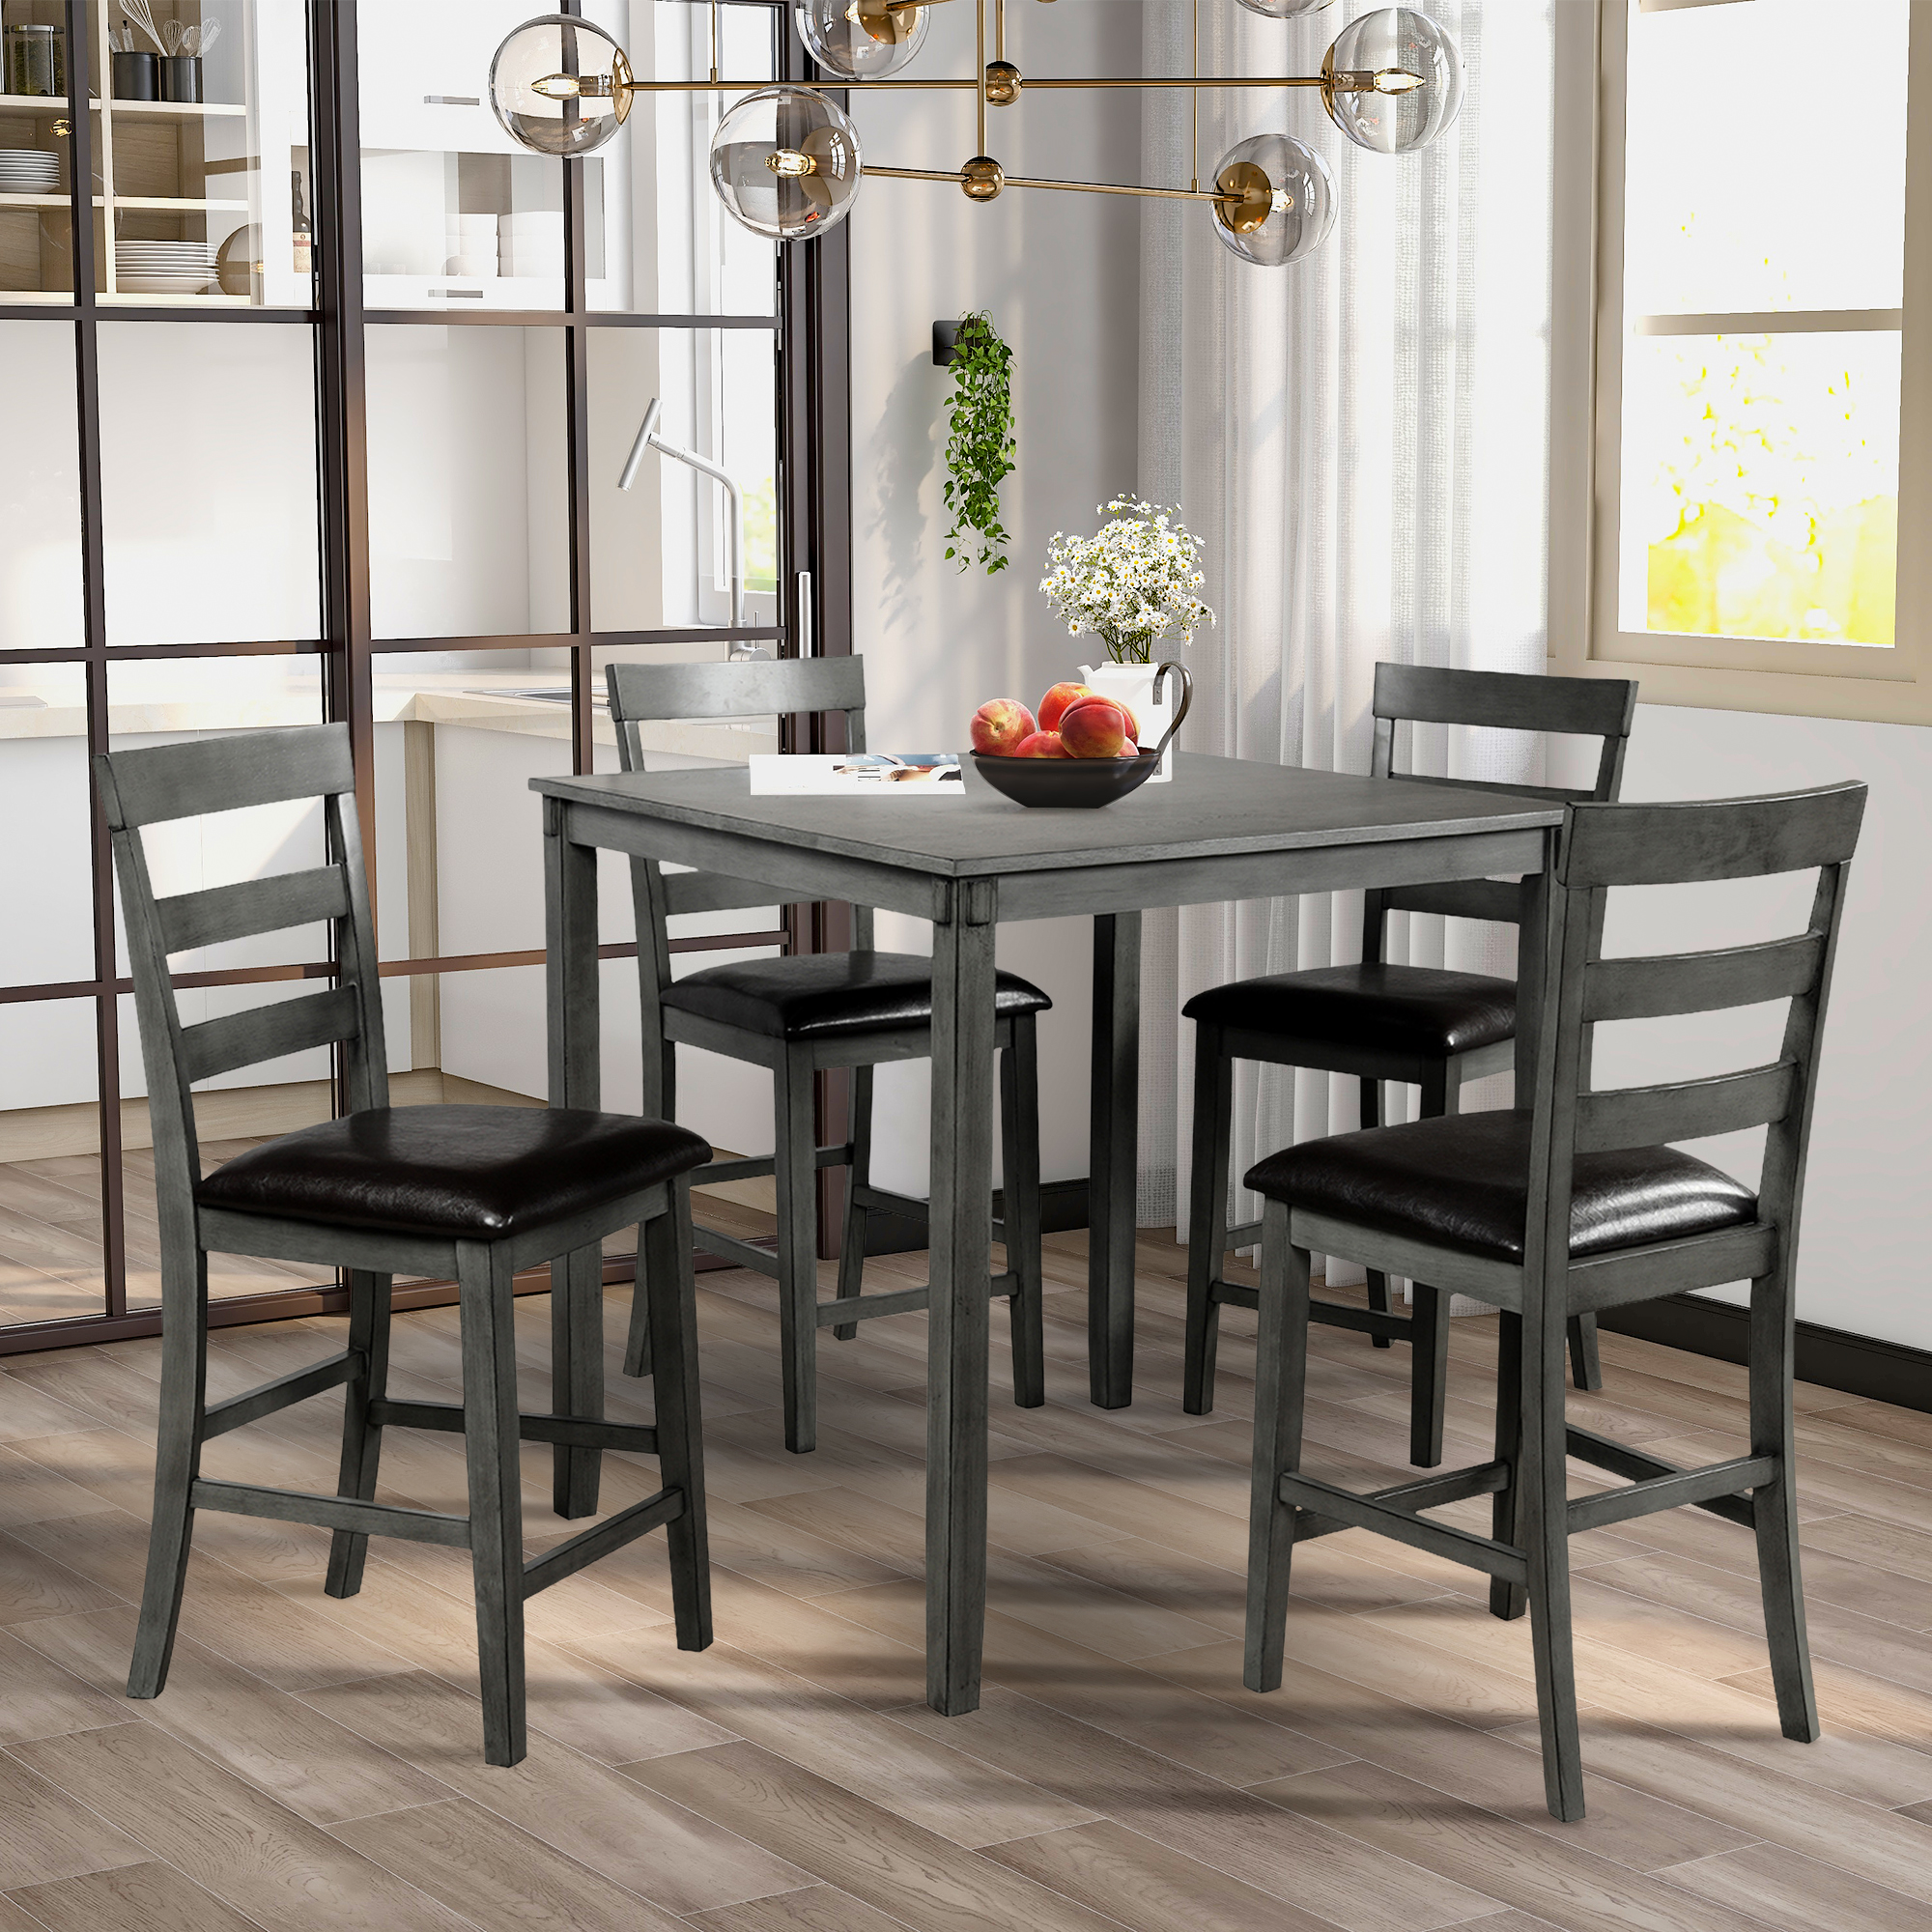 kitchen dining table set of 5 heavyduty wooden dining